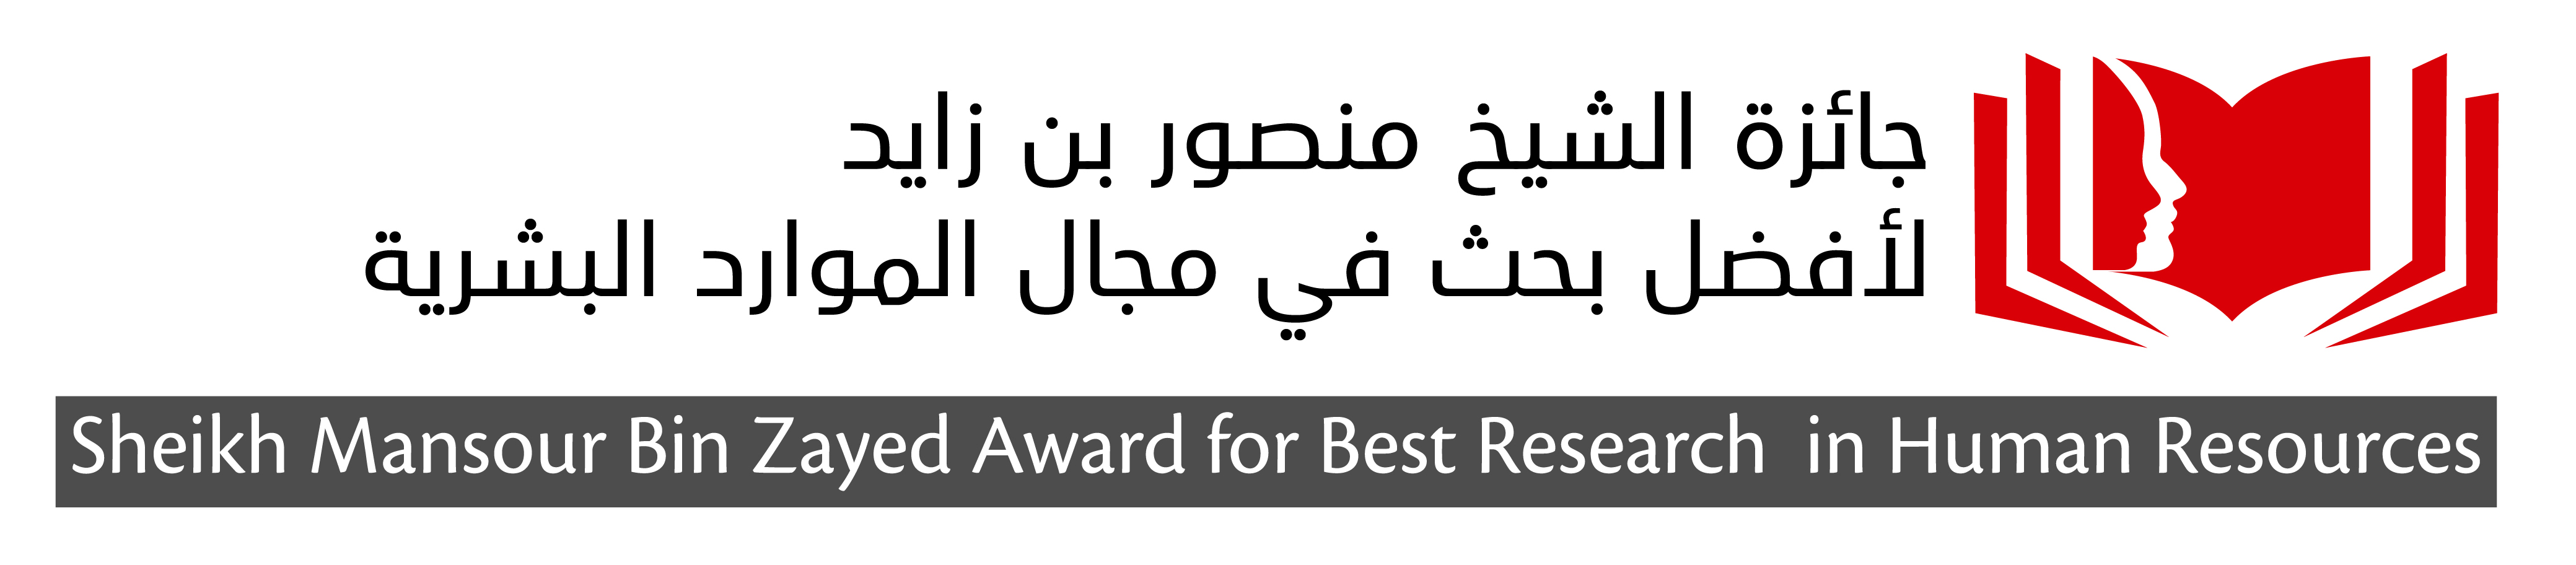 Sheikh Mansour Bin Zayed Award for Best Research in the Field of Human Resources